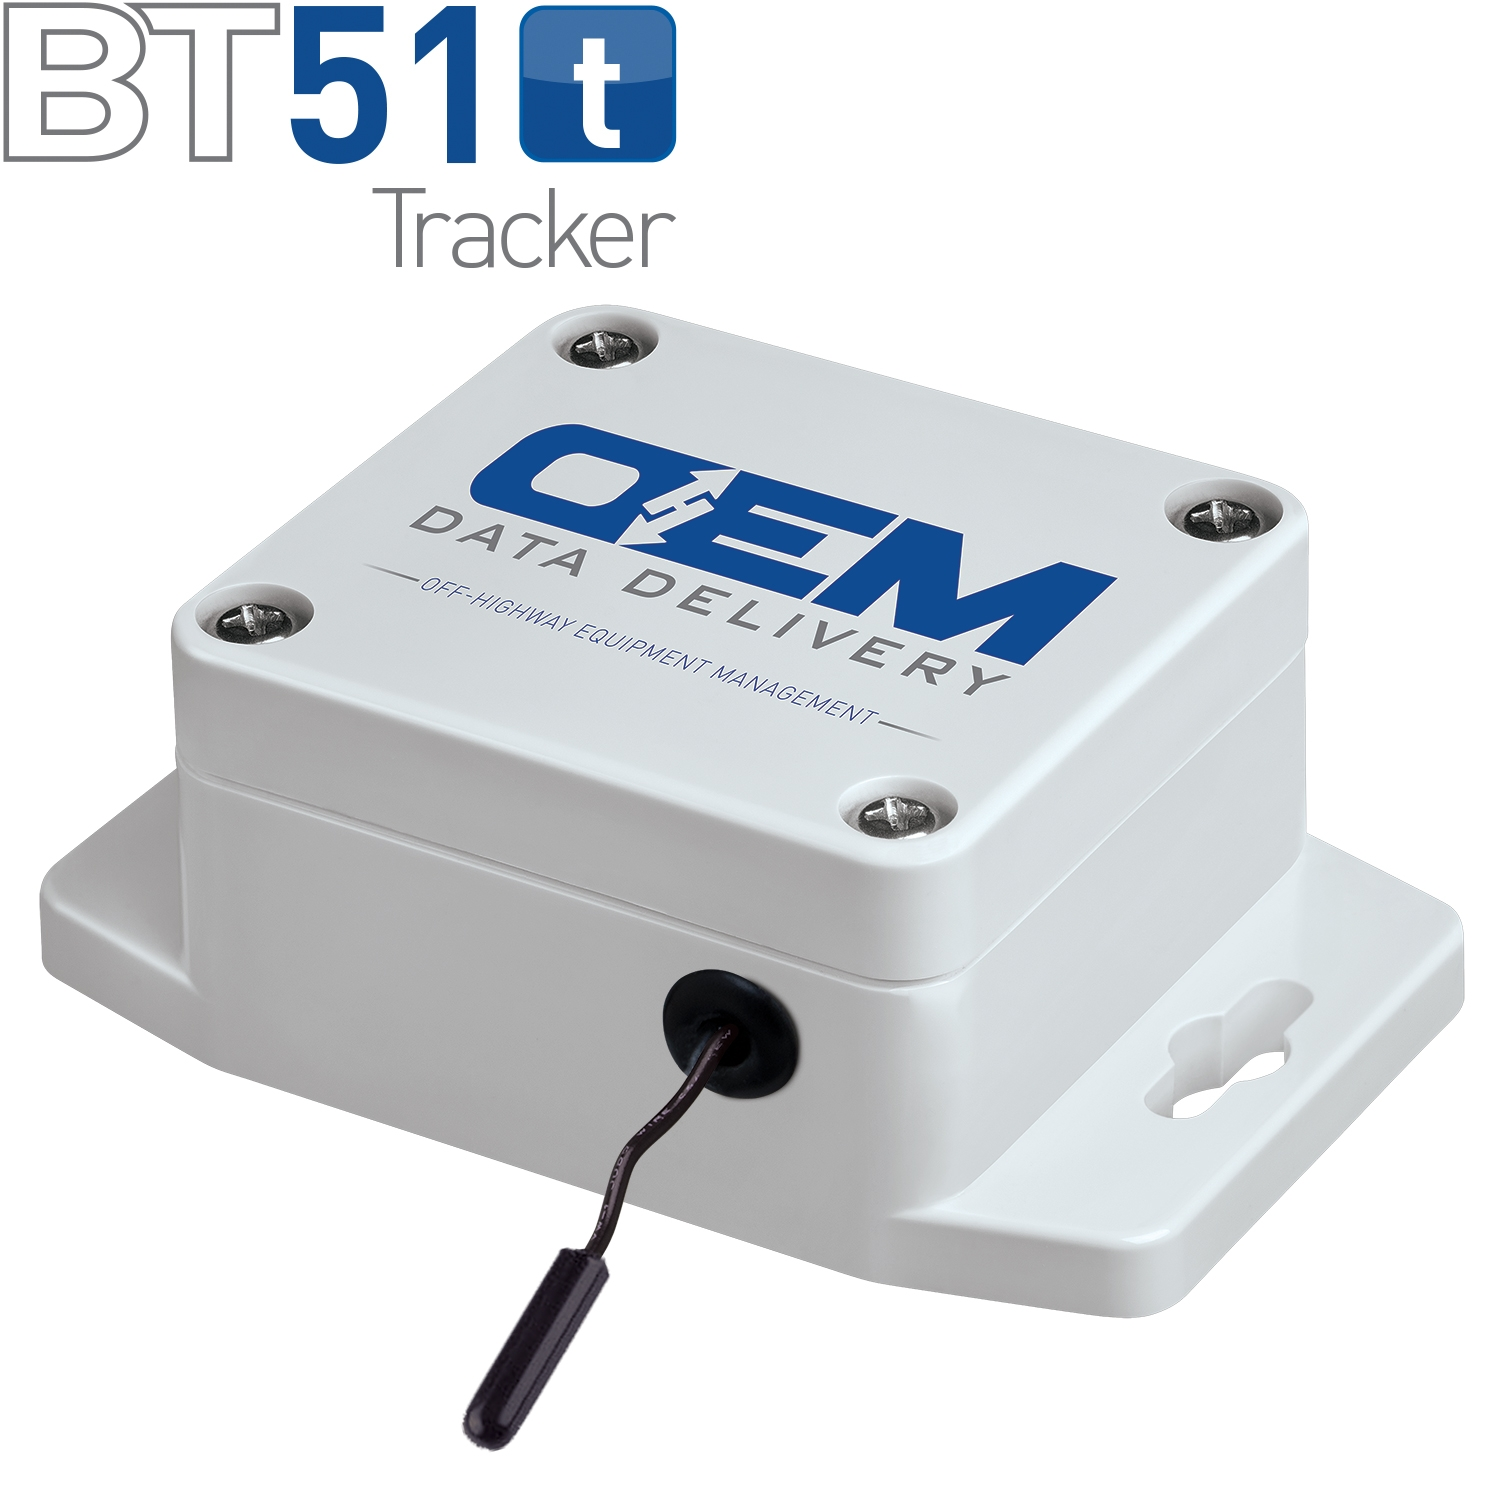 BT51tv Tracker with Logo